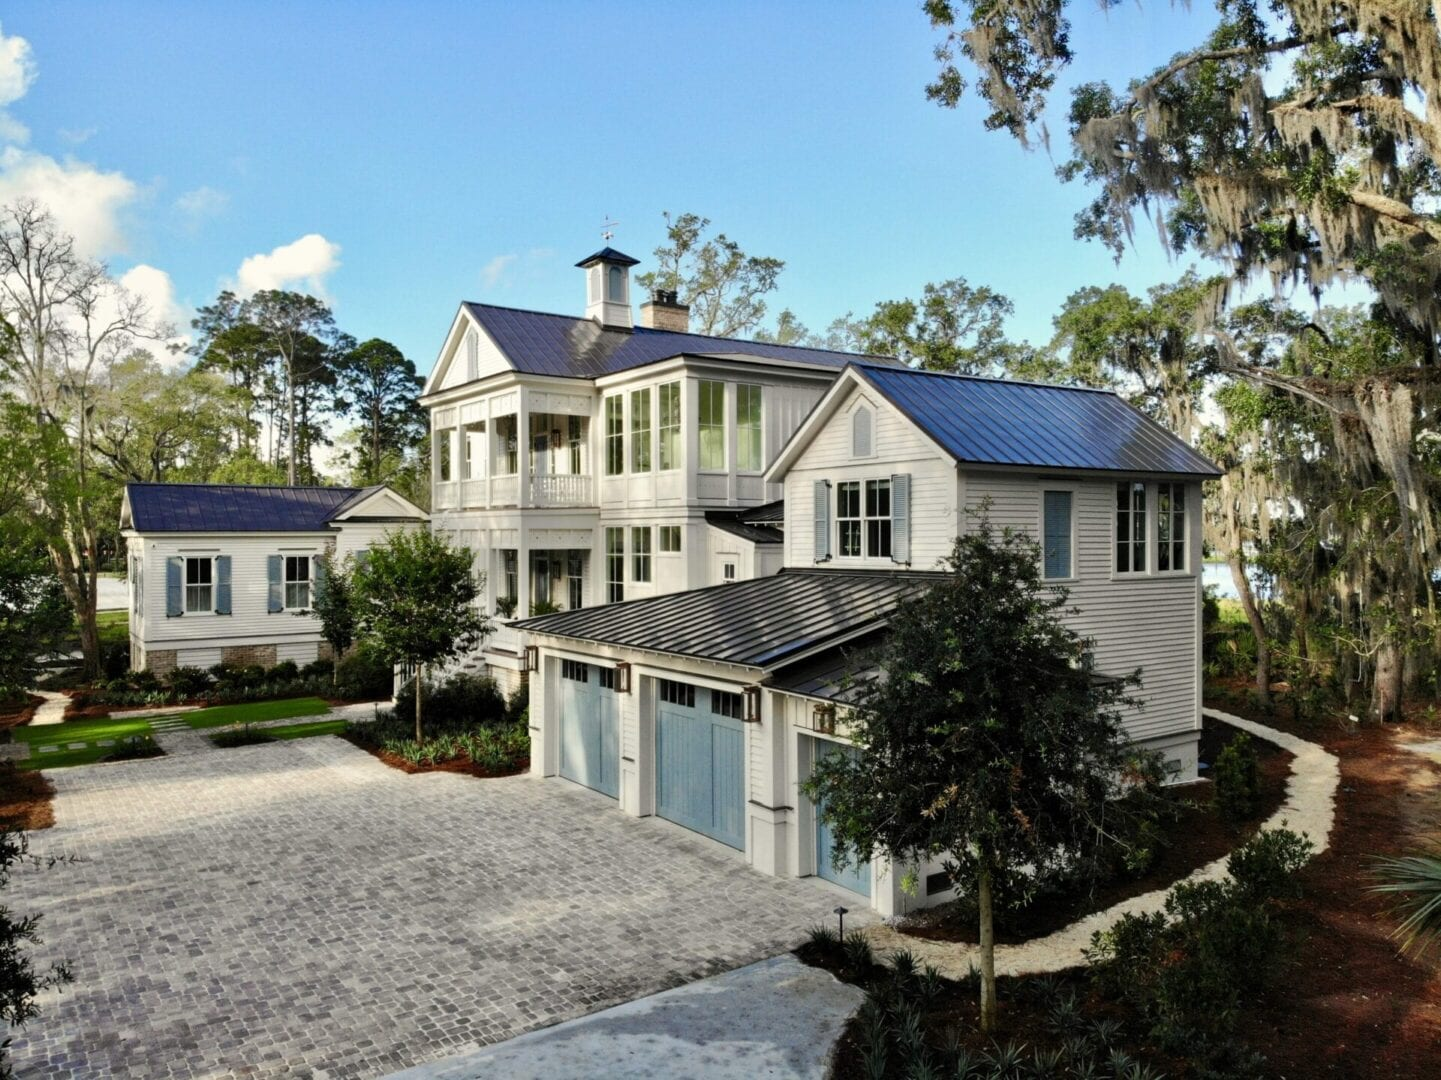 Southern Living Idea House - complete